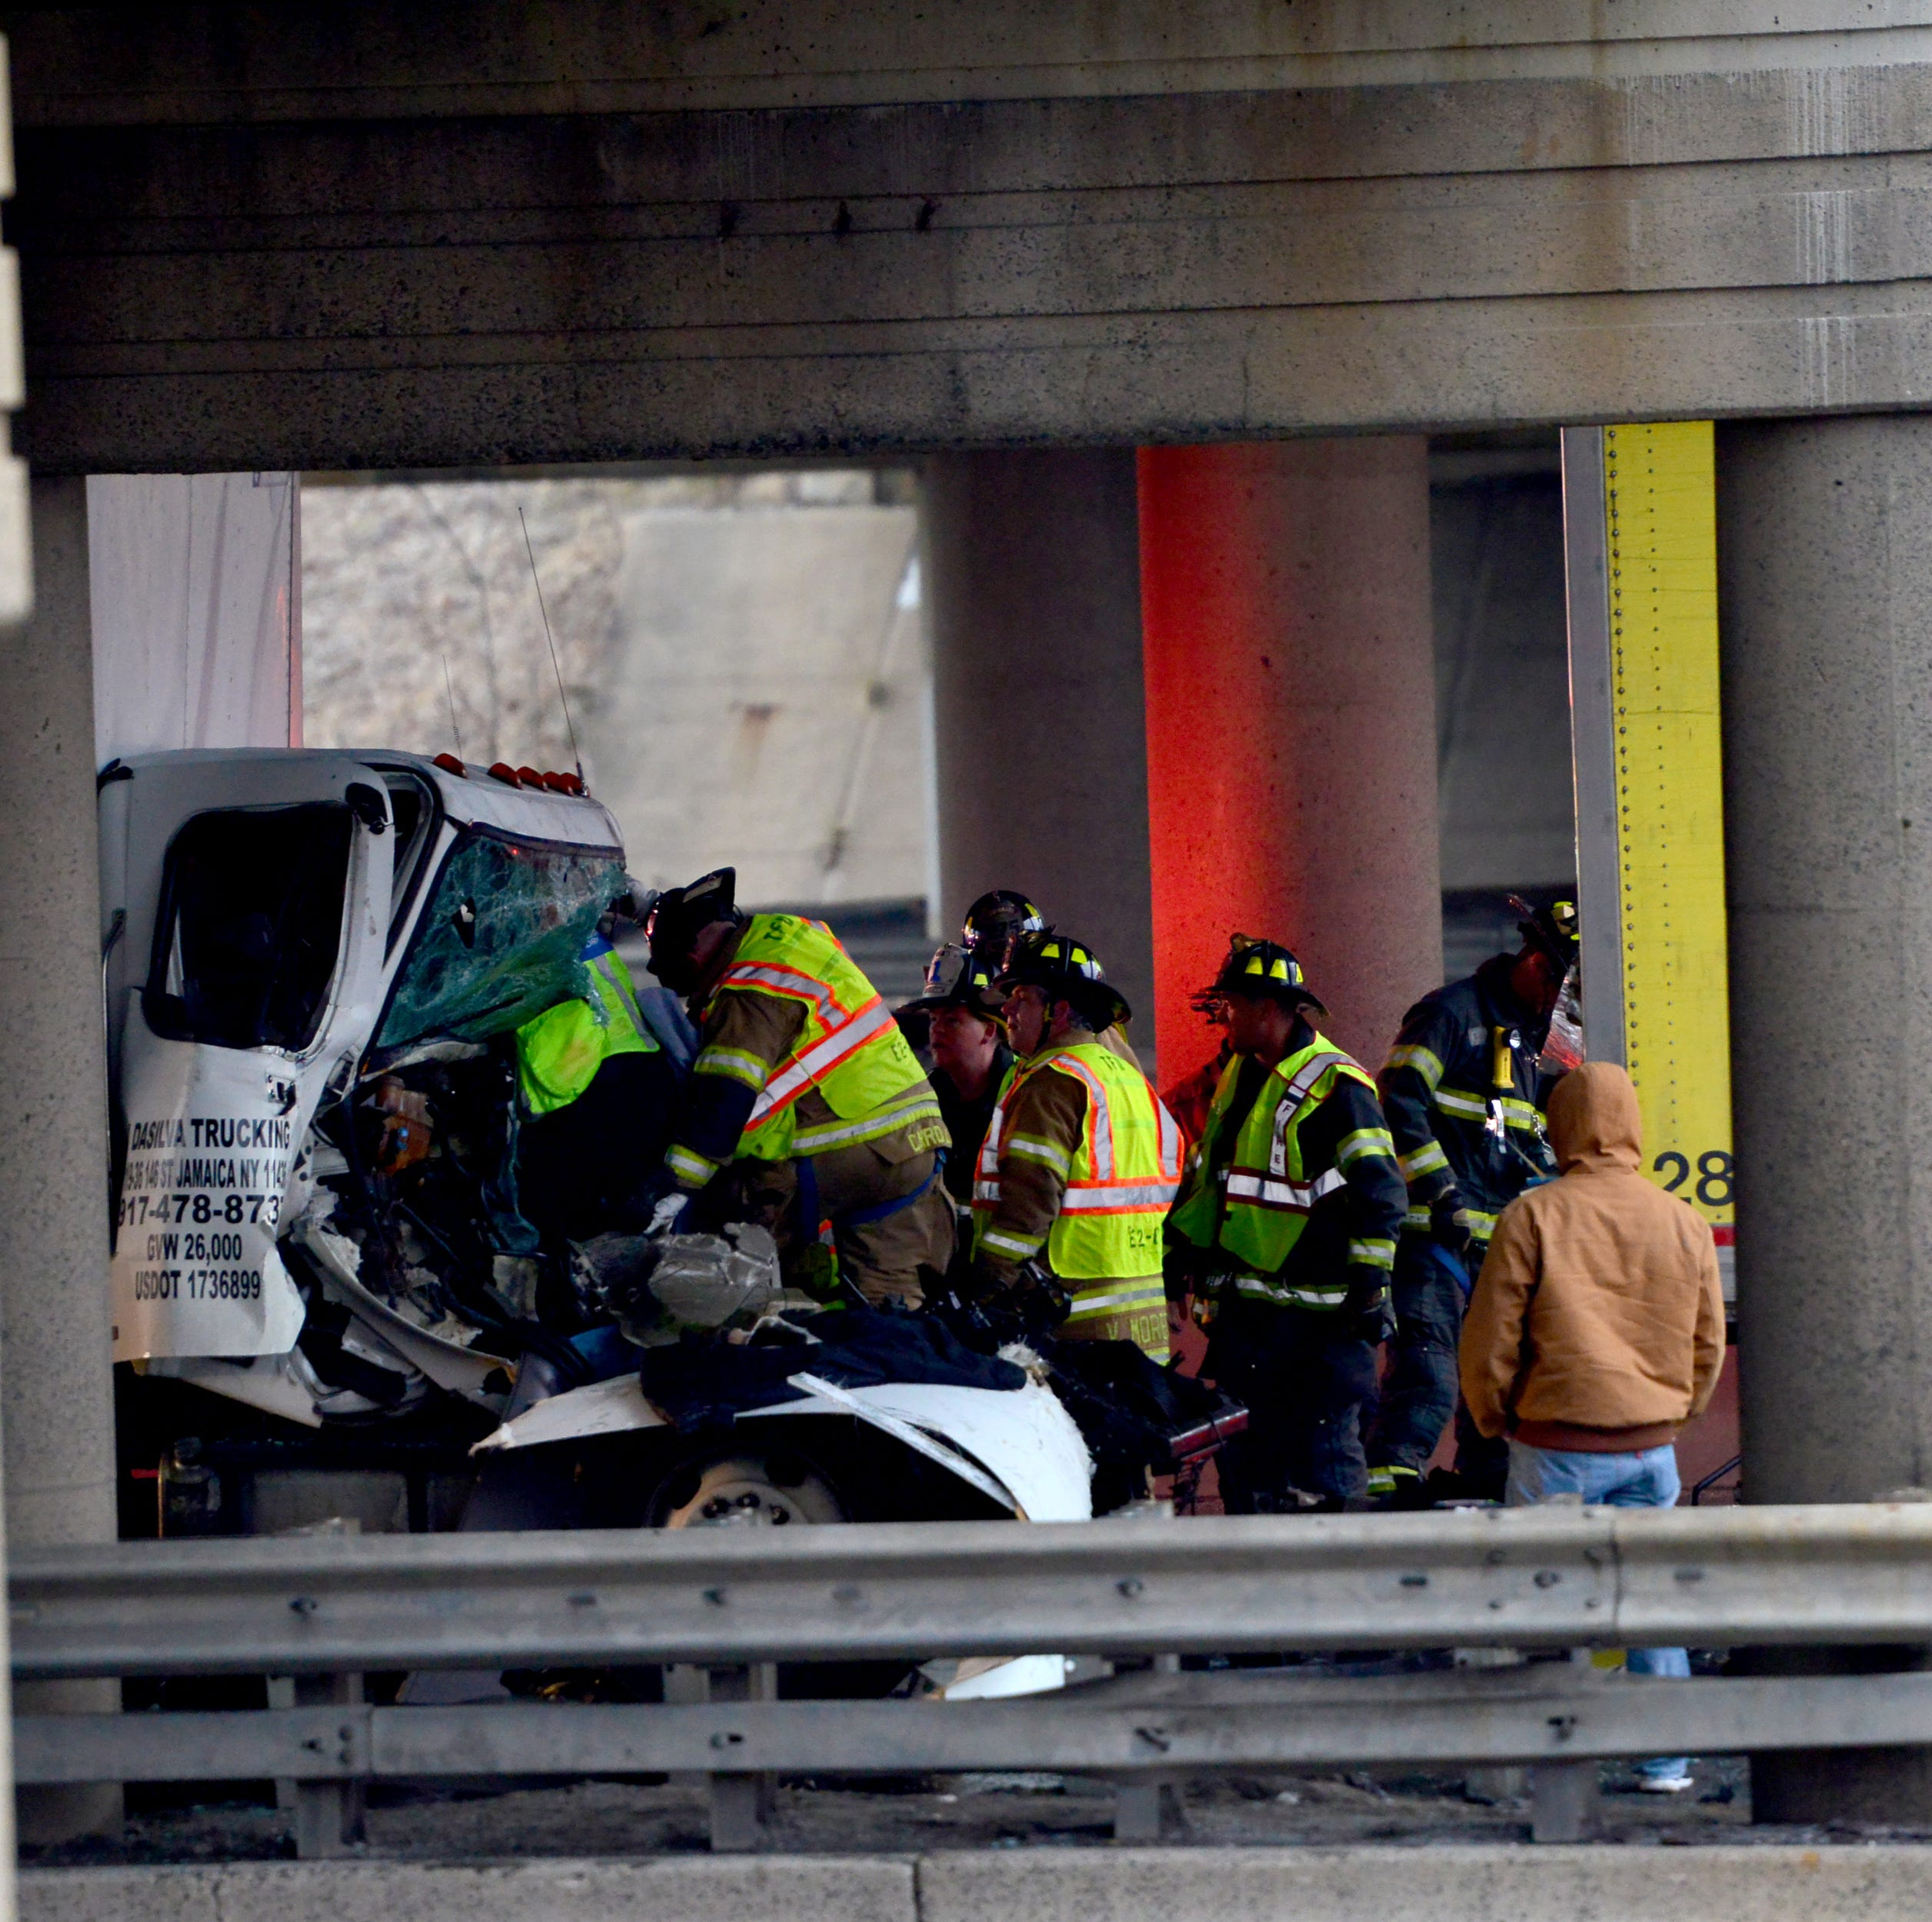 Jersey City truck driver killed in collision between box truck and tractor-trailer in Teaneck